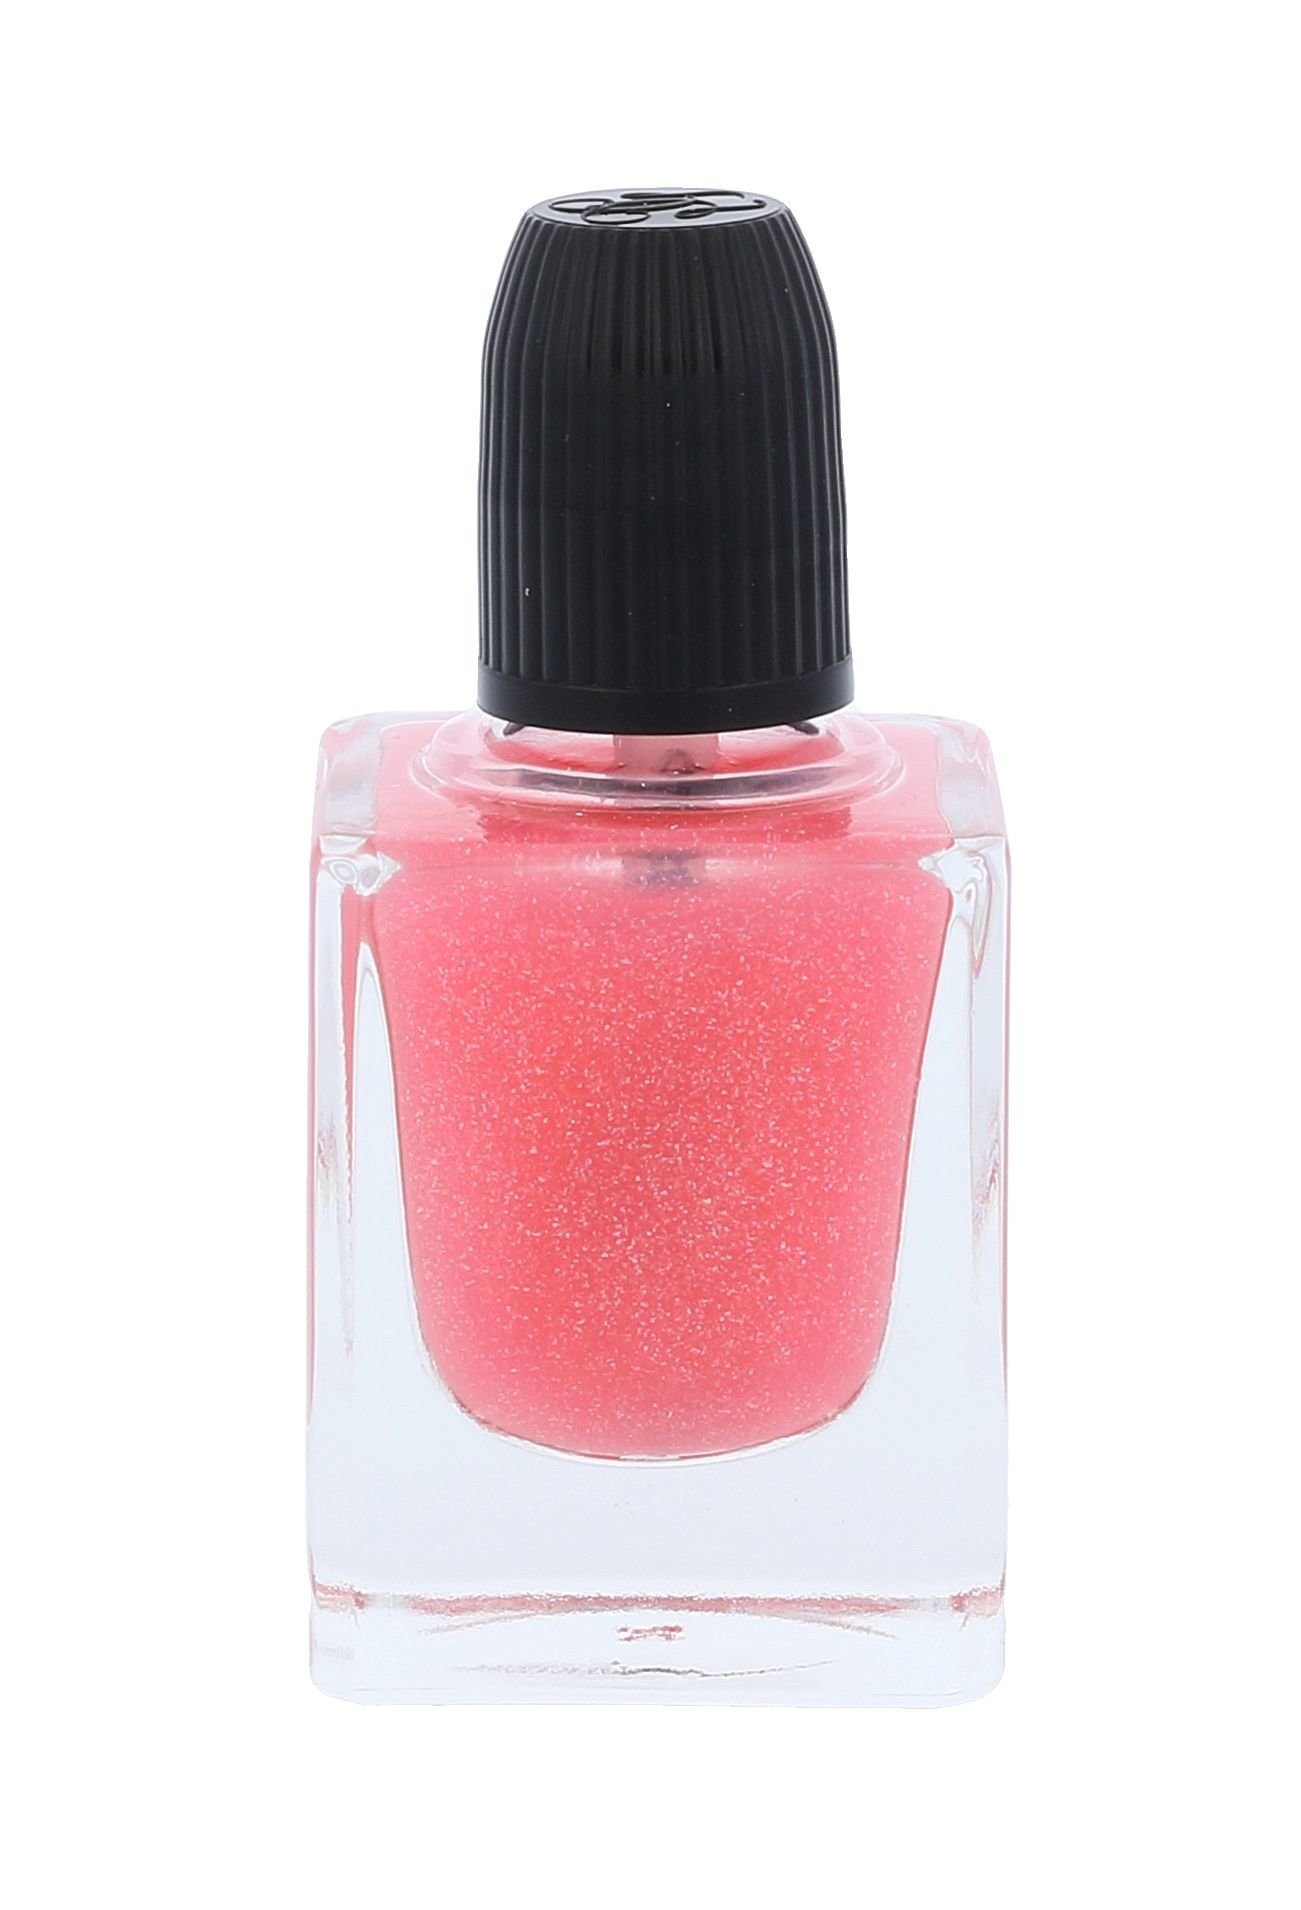 Guerlain La Petite Robe Noire Cosmetic 8,8ml 001 My First Nail Polish